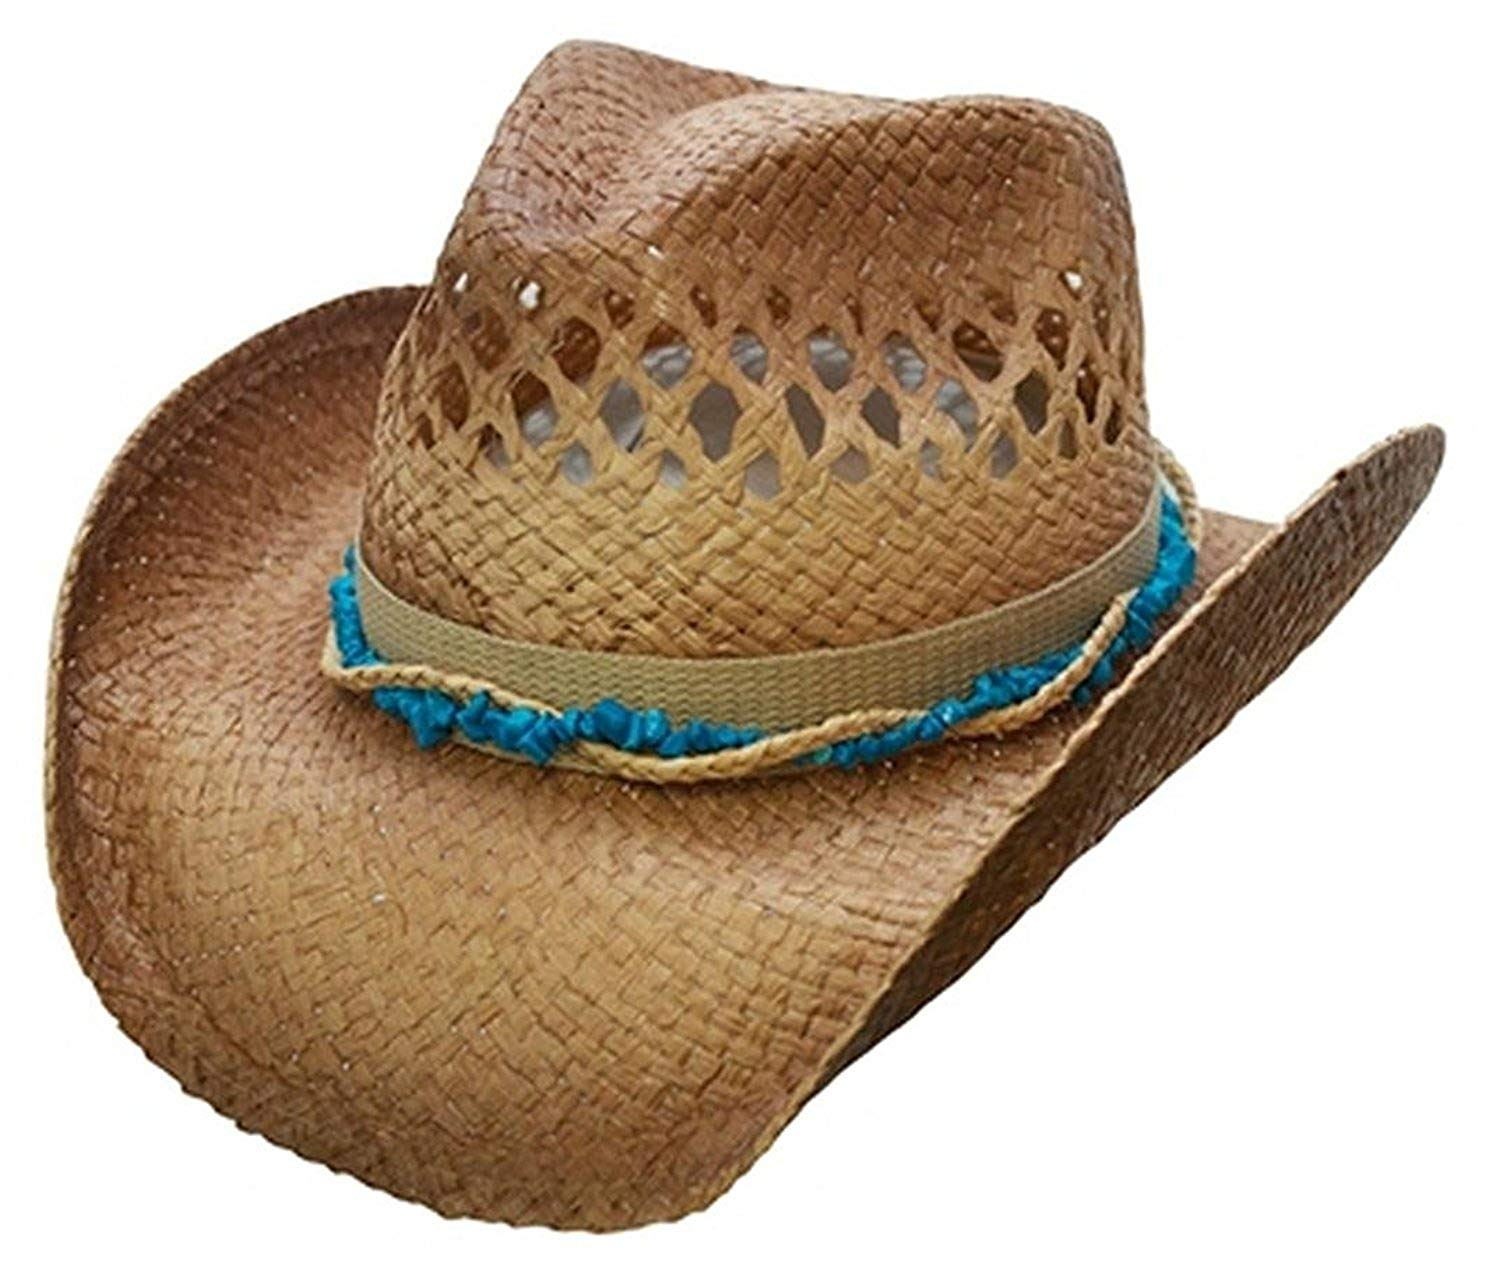 ea4a32839f104 Get Quotations · Cov-ver Hats Organic Raffia Straw Western Cowboy Hat 2  colors